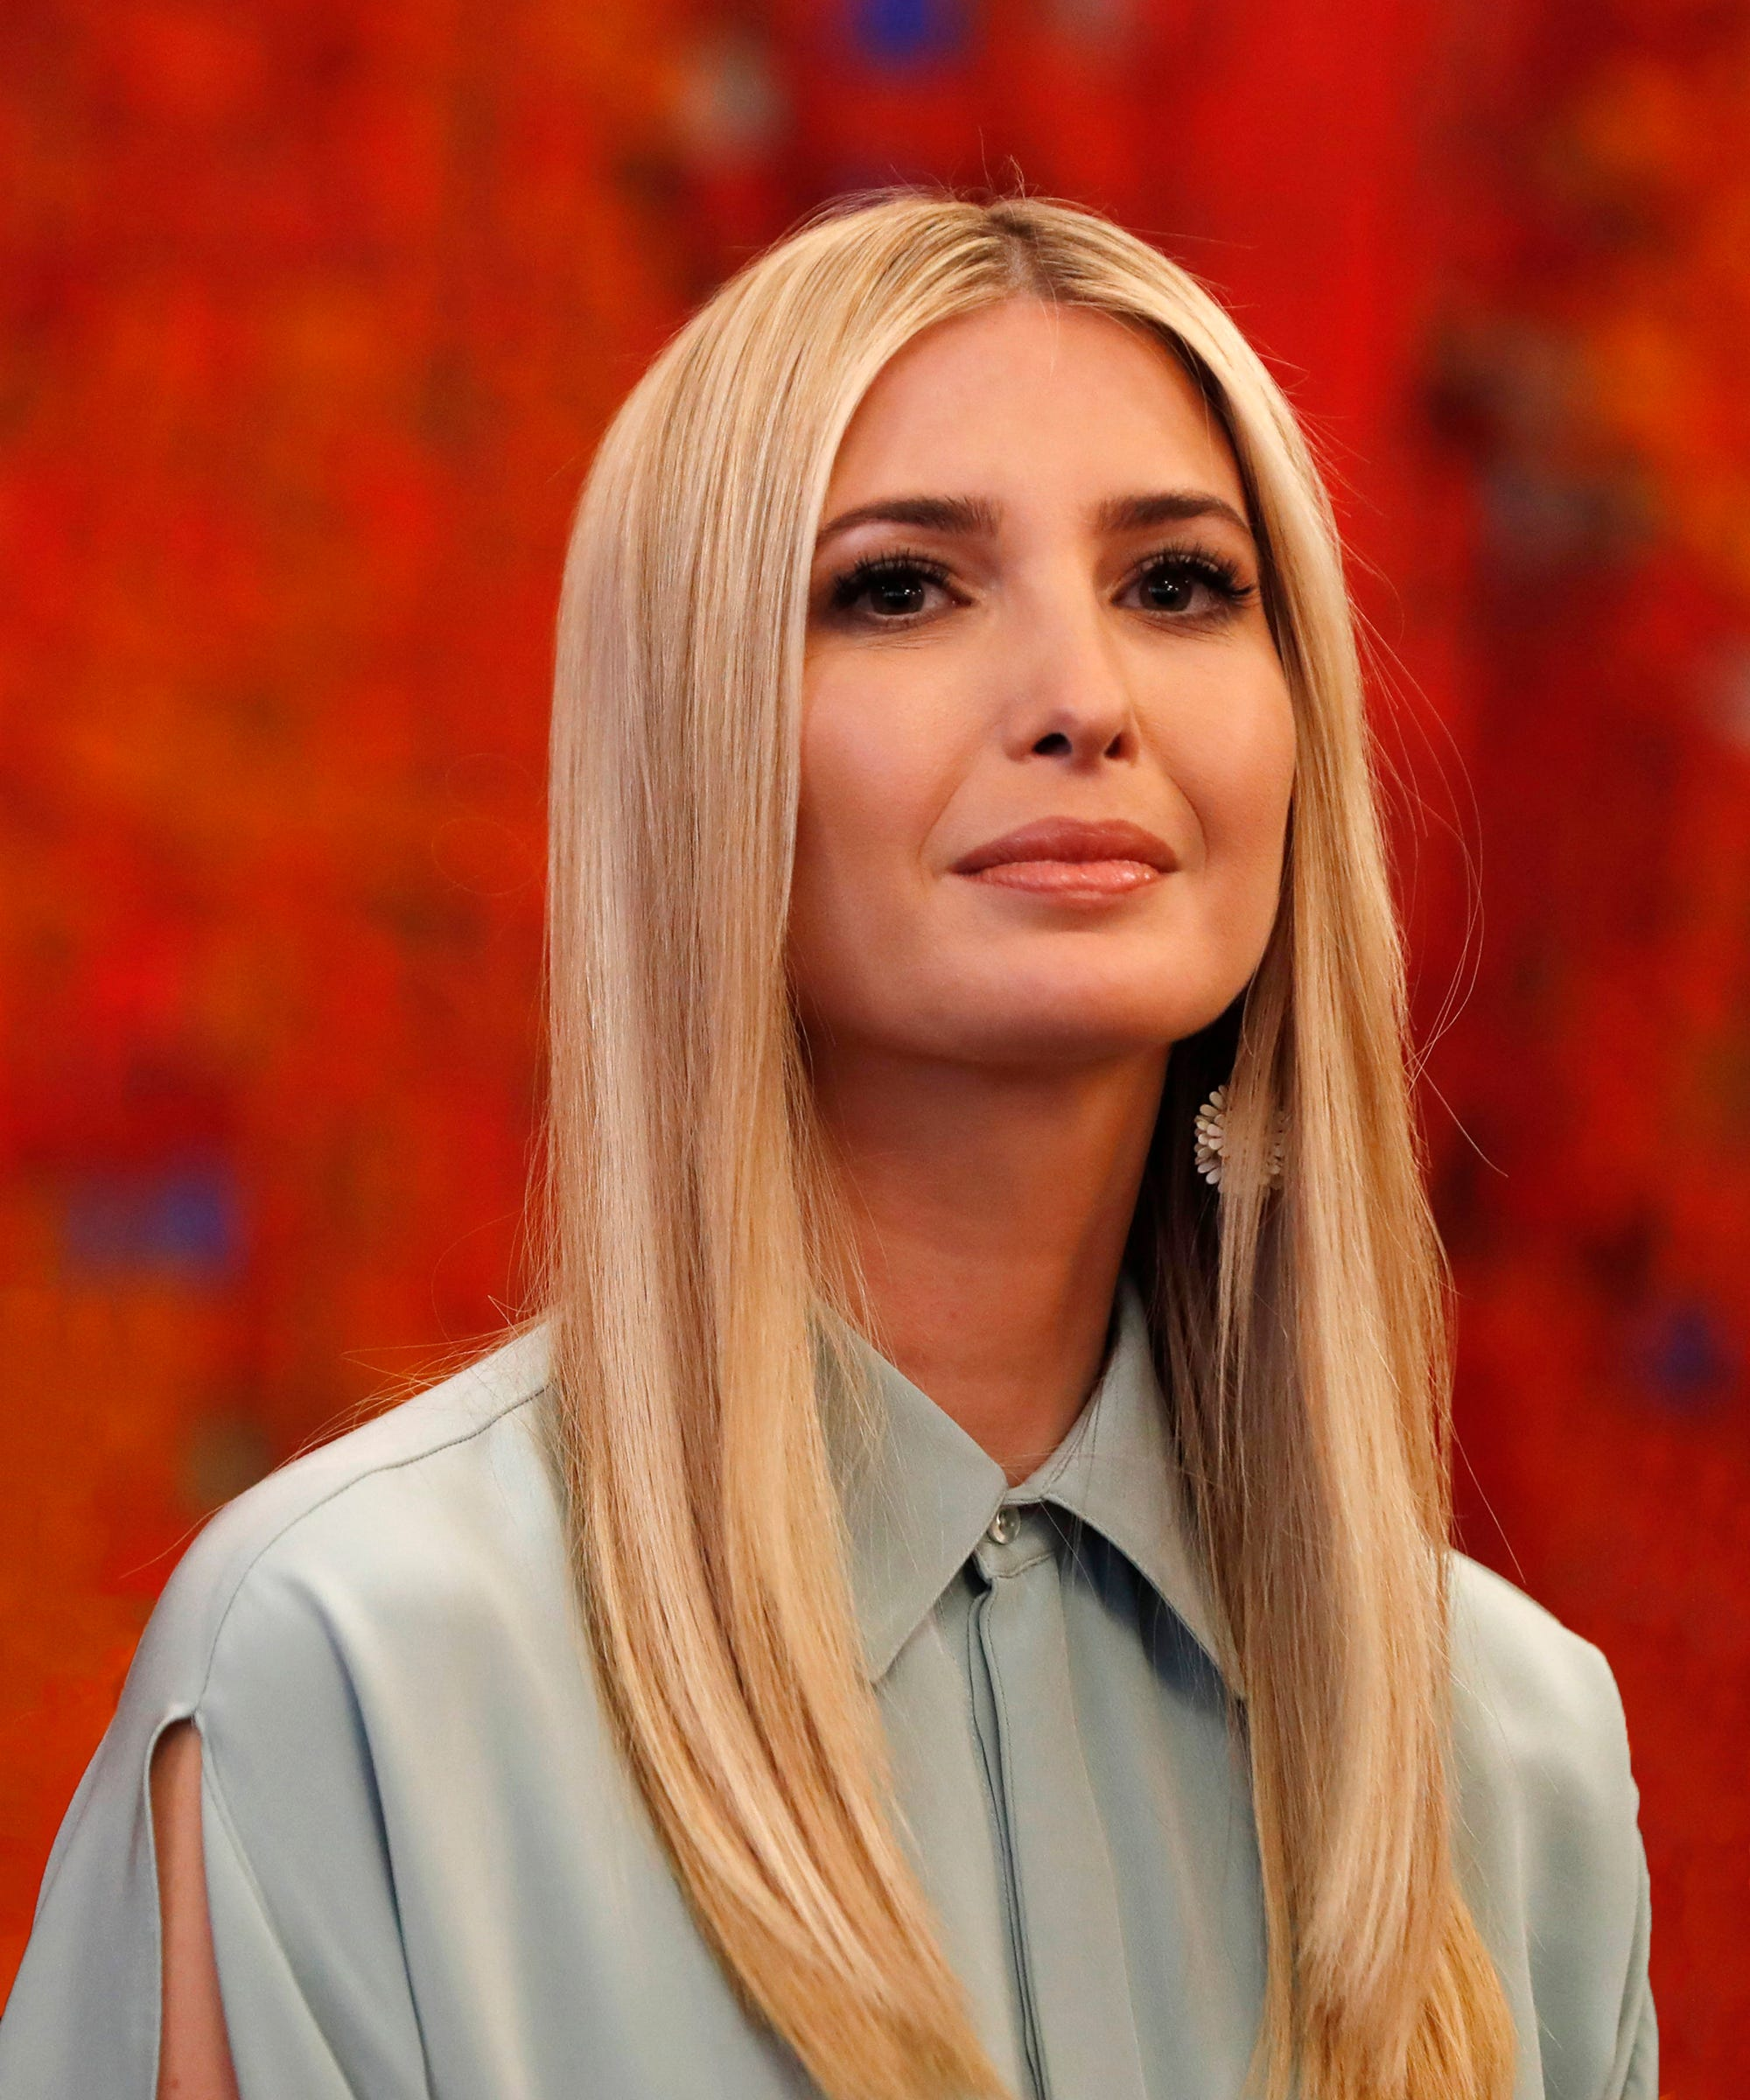 Ivanka Trump Closed Her Fashion Brands, But She Earned Millions From Her Father's D.C. Hotel